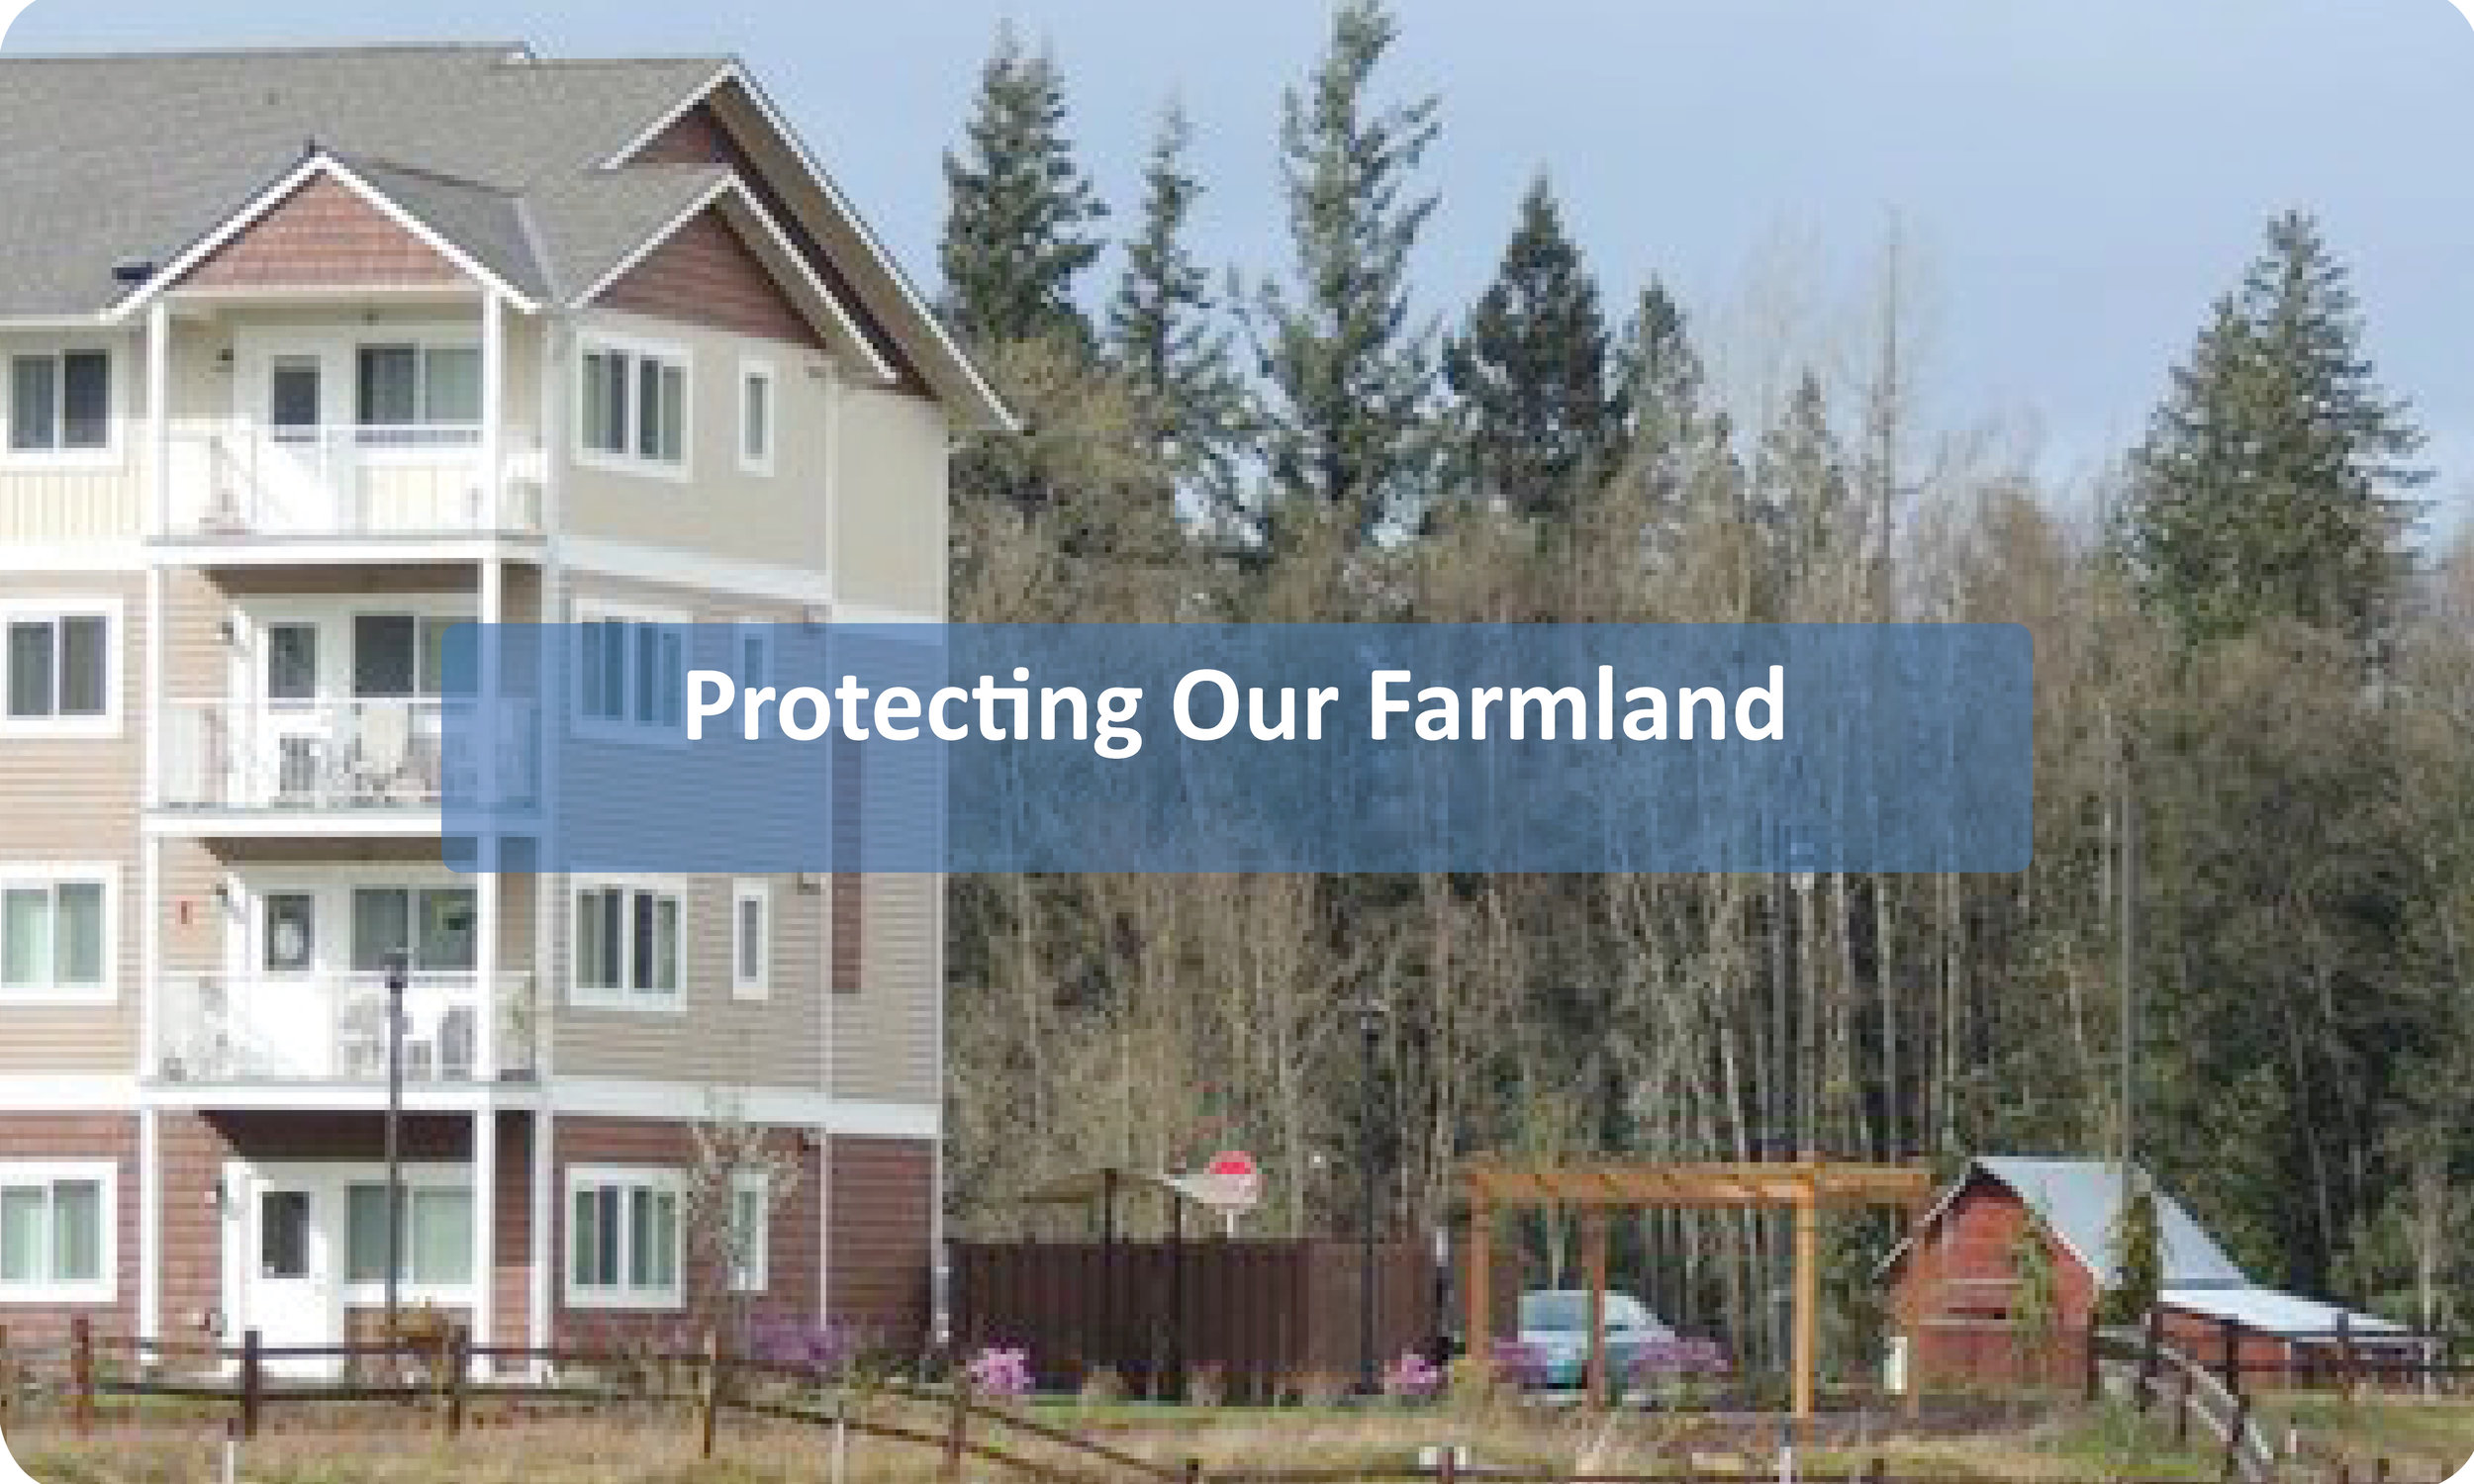 Protecting Our Farmland